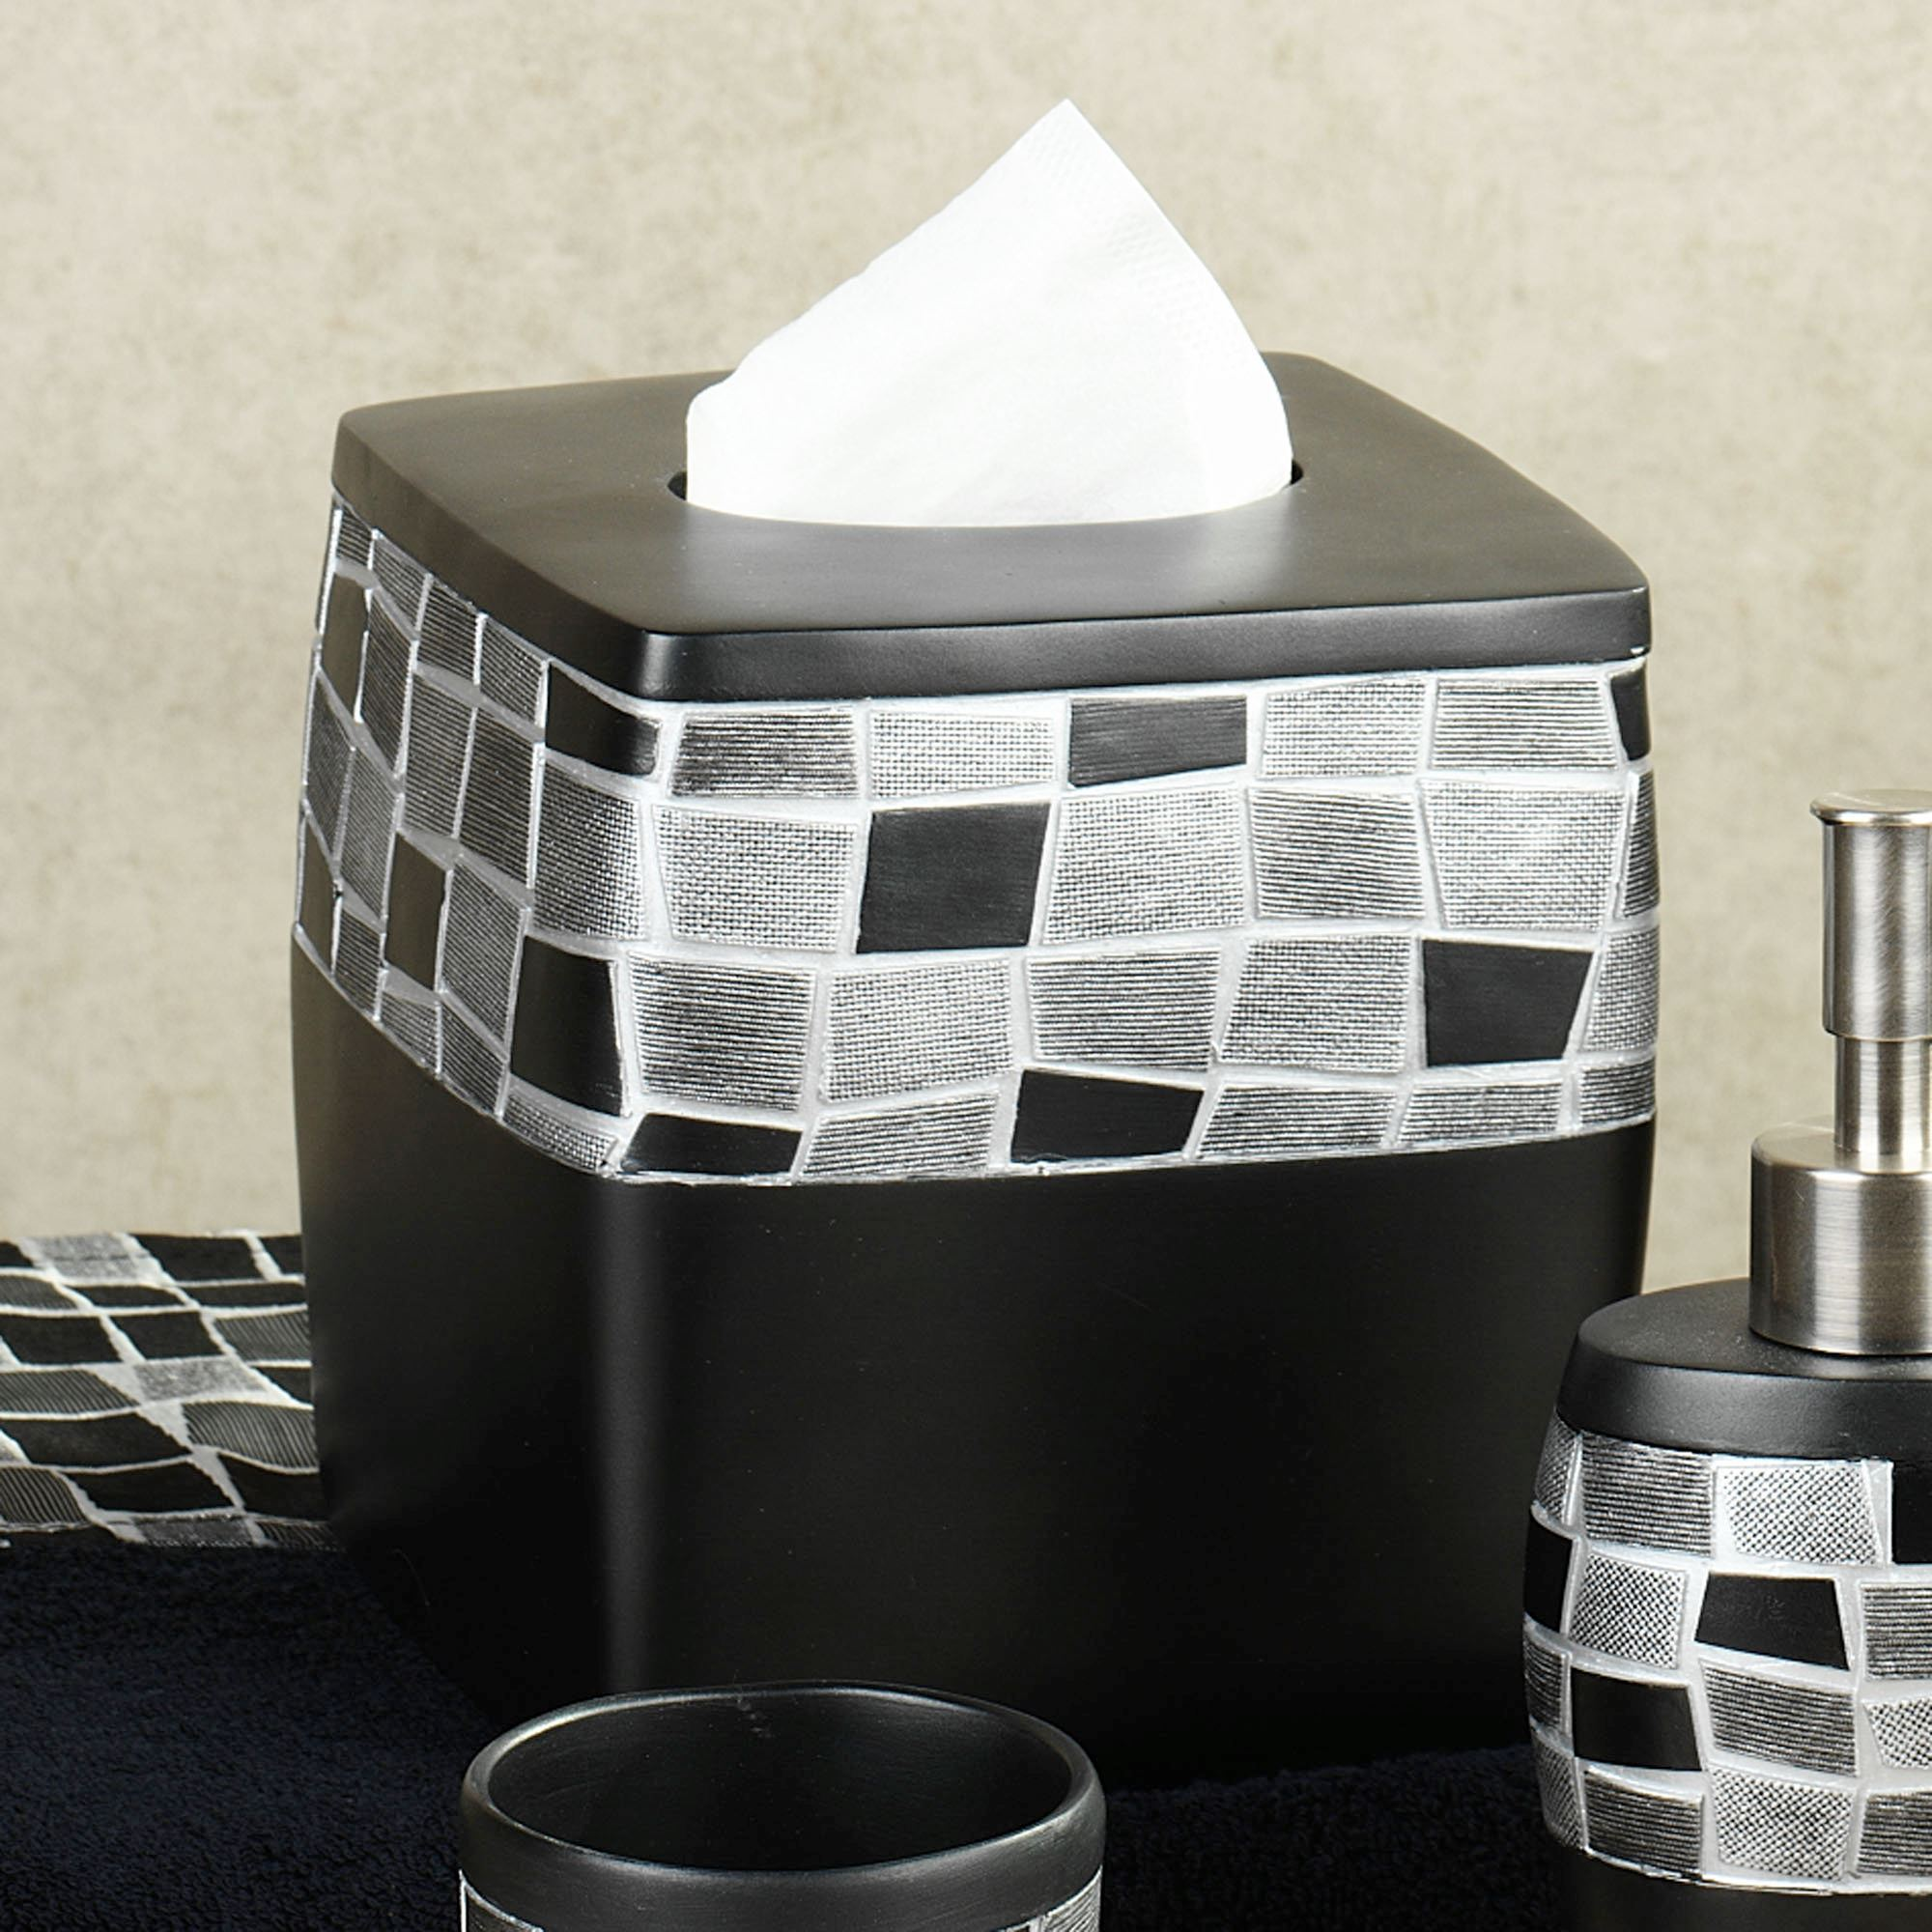 black mosaic bathroom accessories. Black Mosaic Stone Tissue Cover Resin Bath Accessories